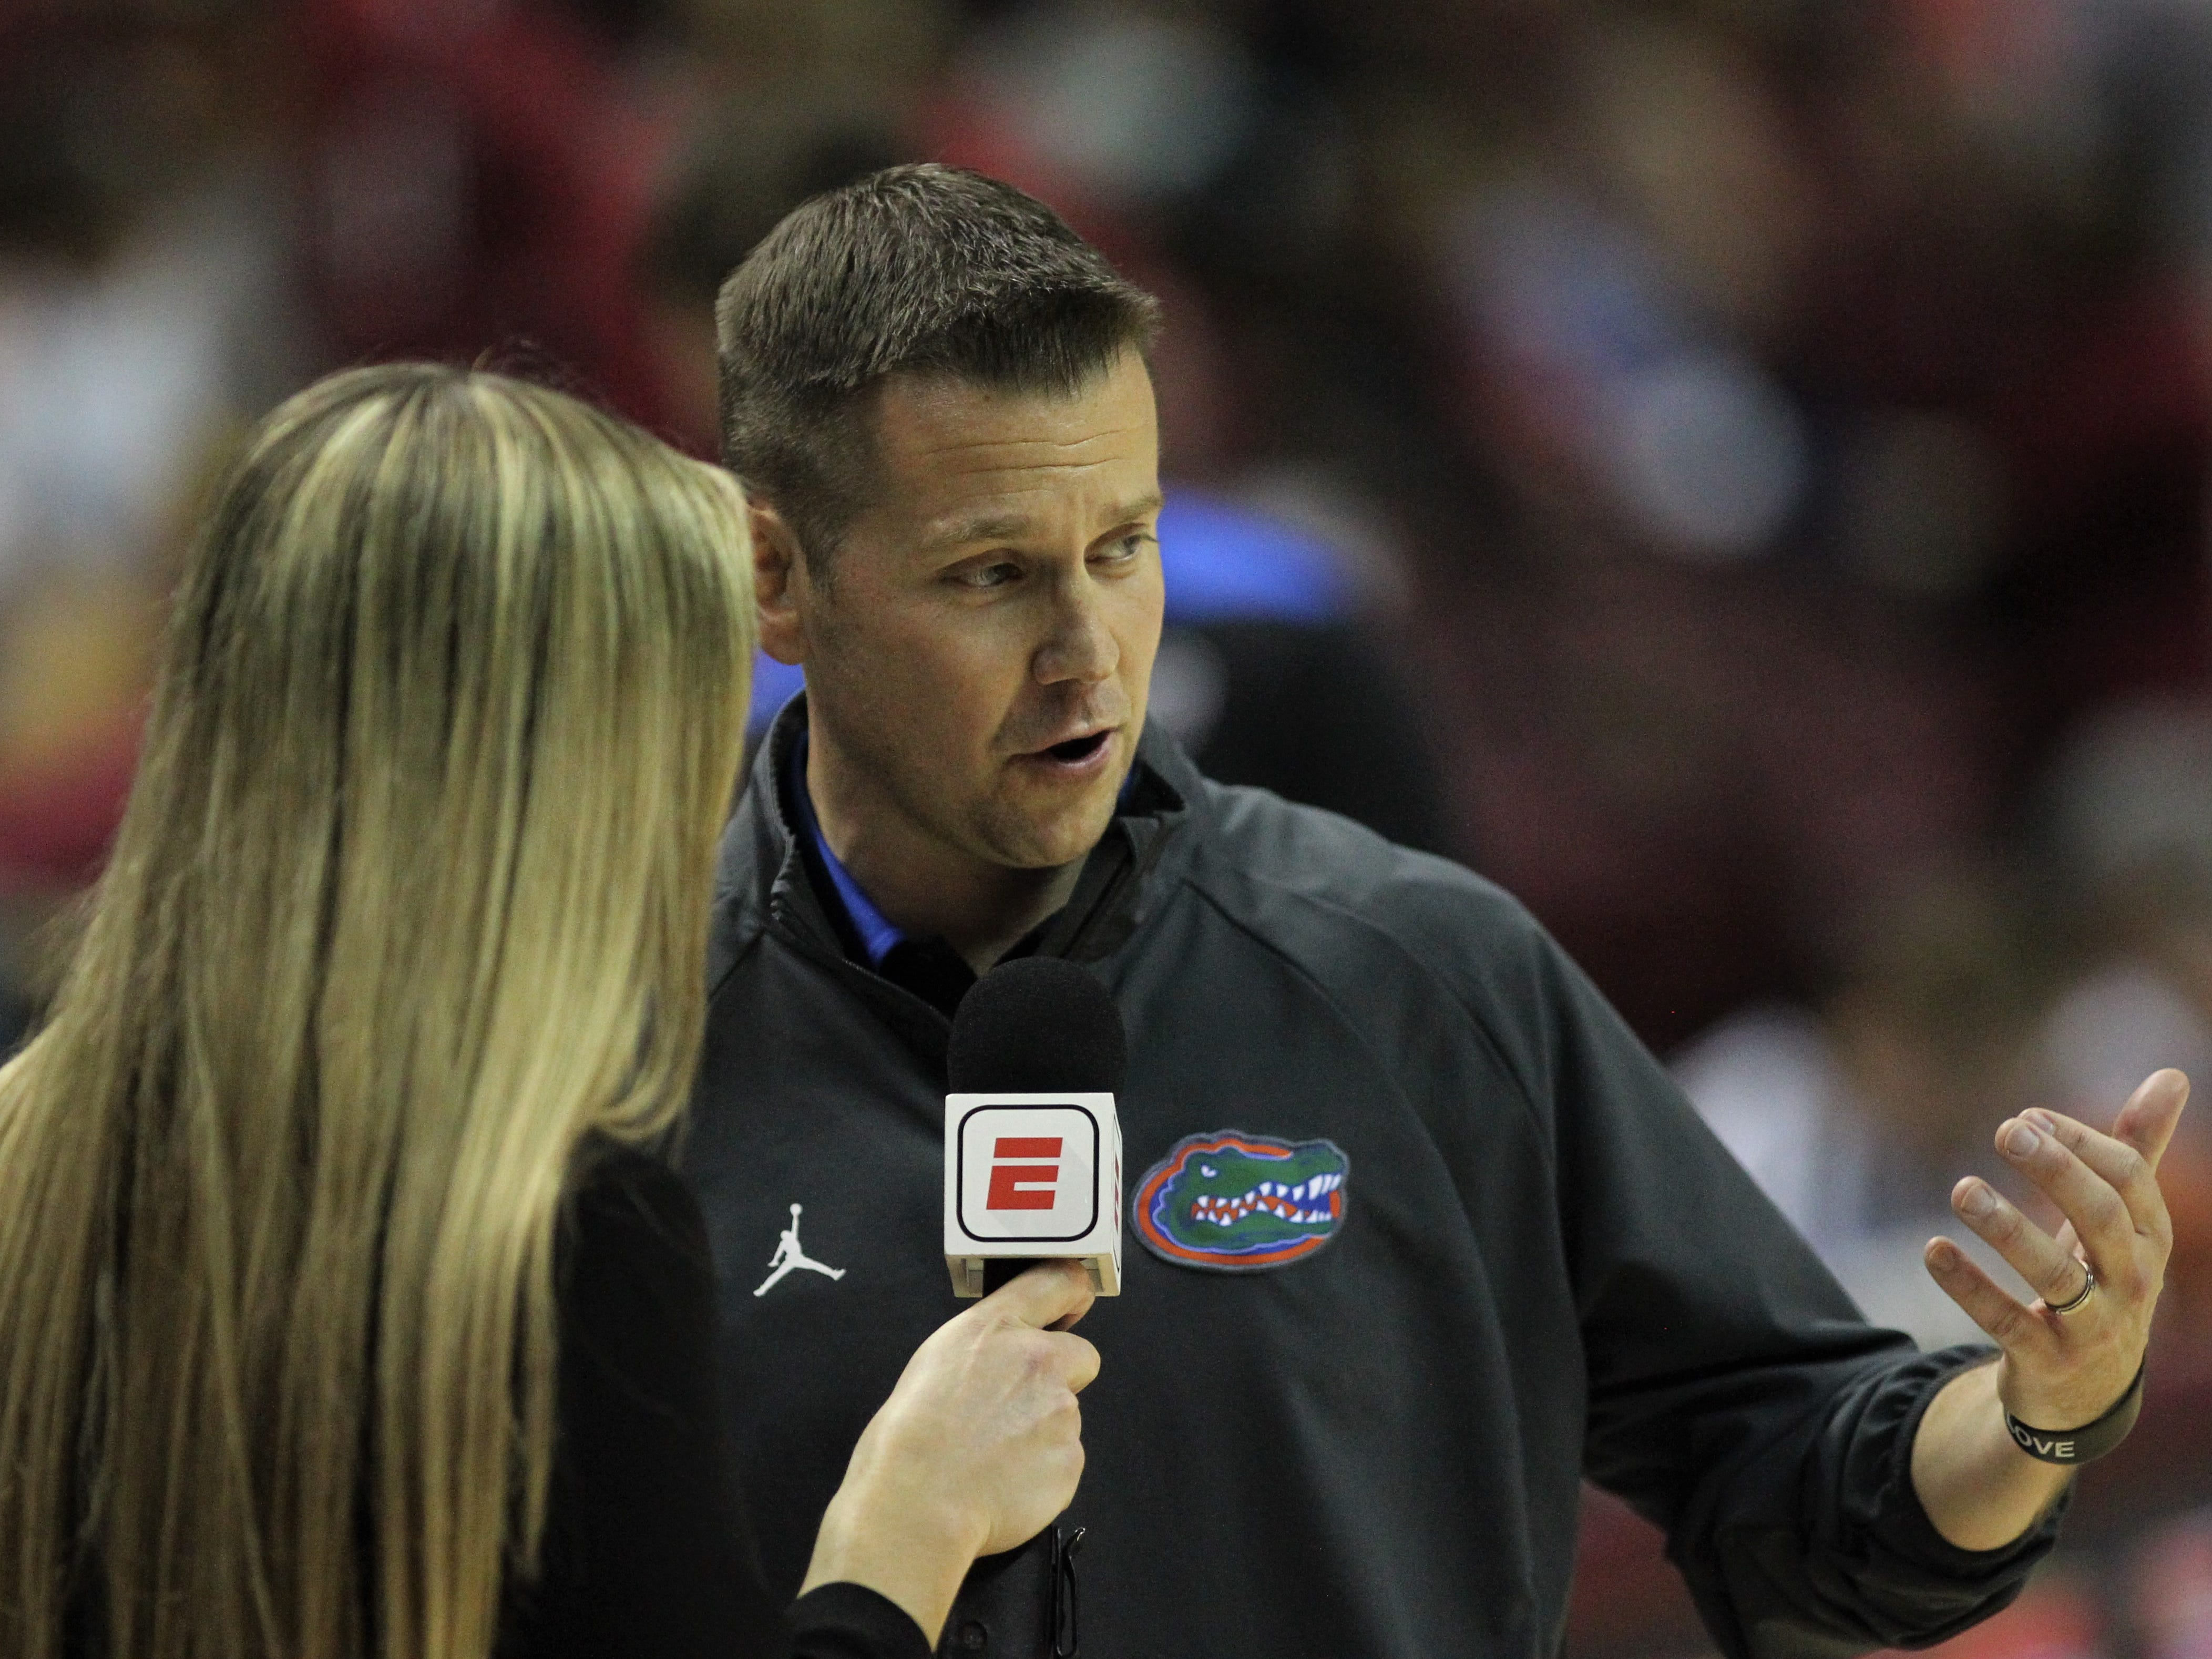 Florida women's basketball coach Cameron Newbauer talks to ESPN after the first half of a game against FSU at the Tucker Civic Center on Nov. 11, 2018.